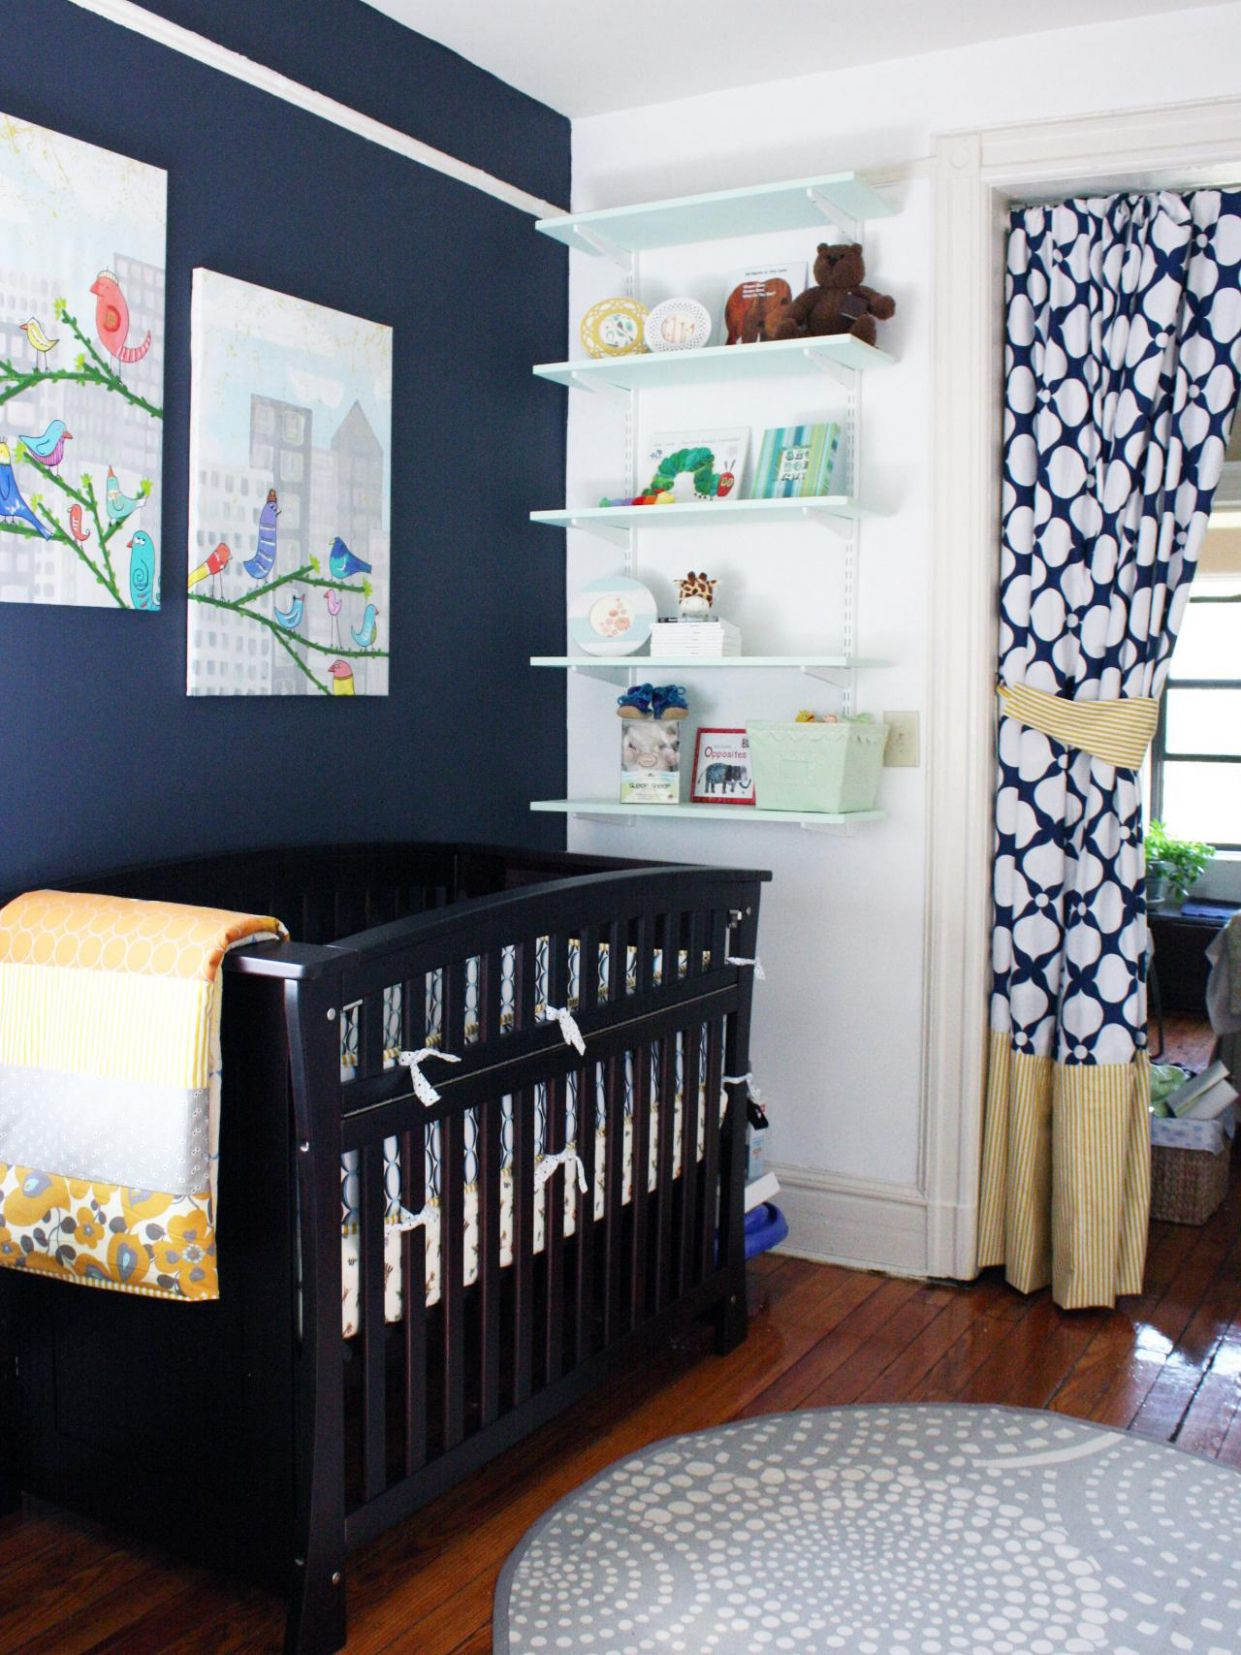 2019 baby room ideas for small spaces bedroom decorating ideas on